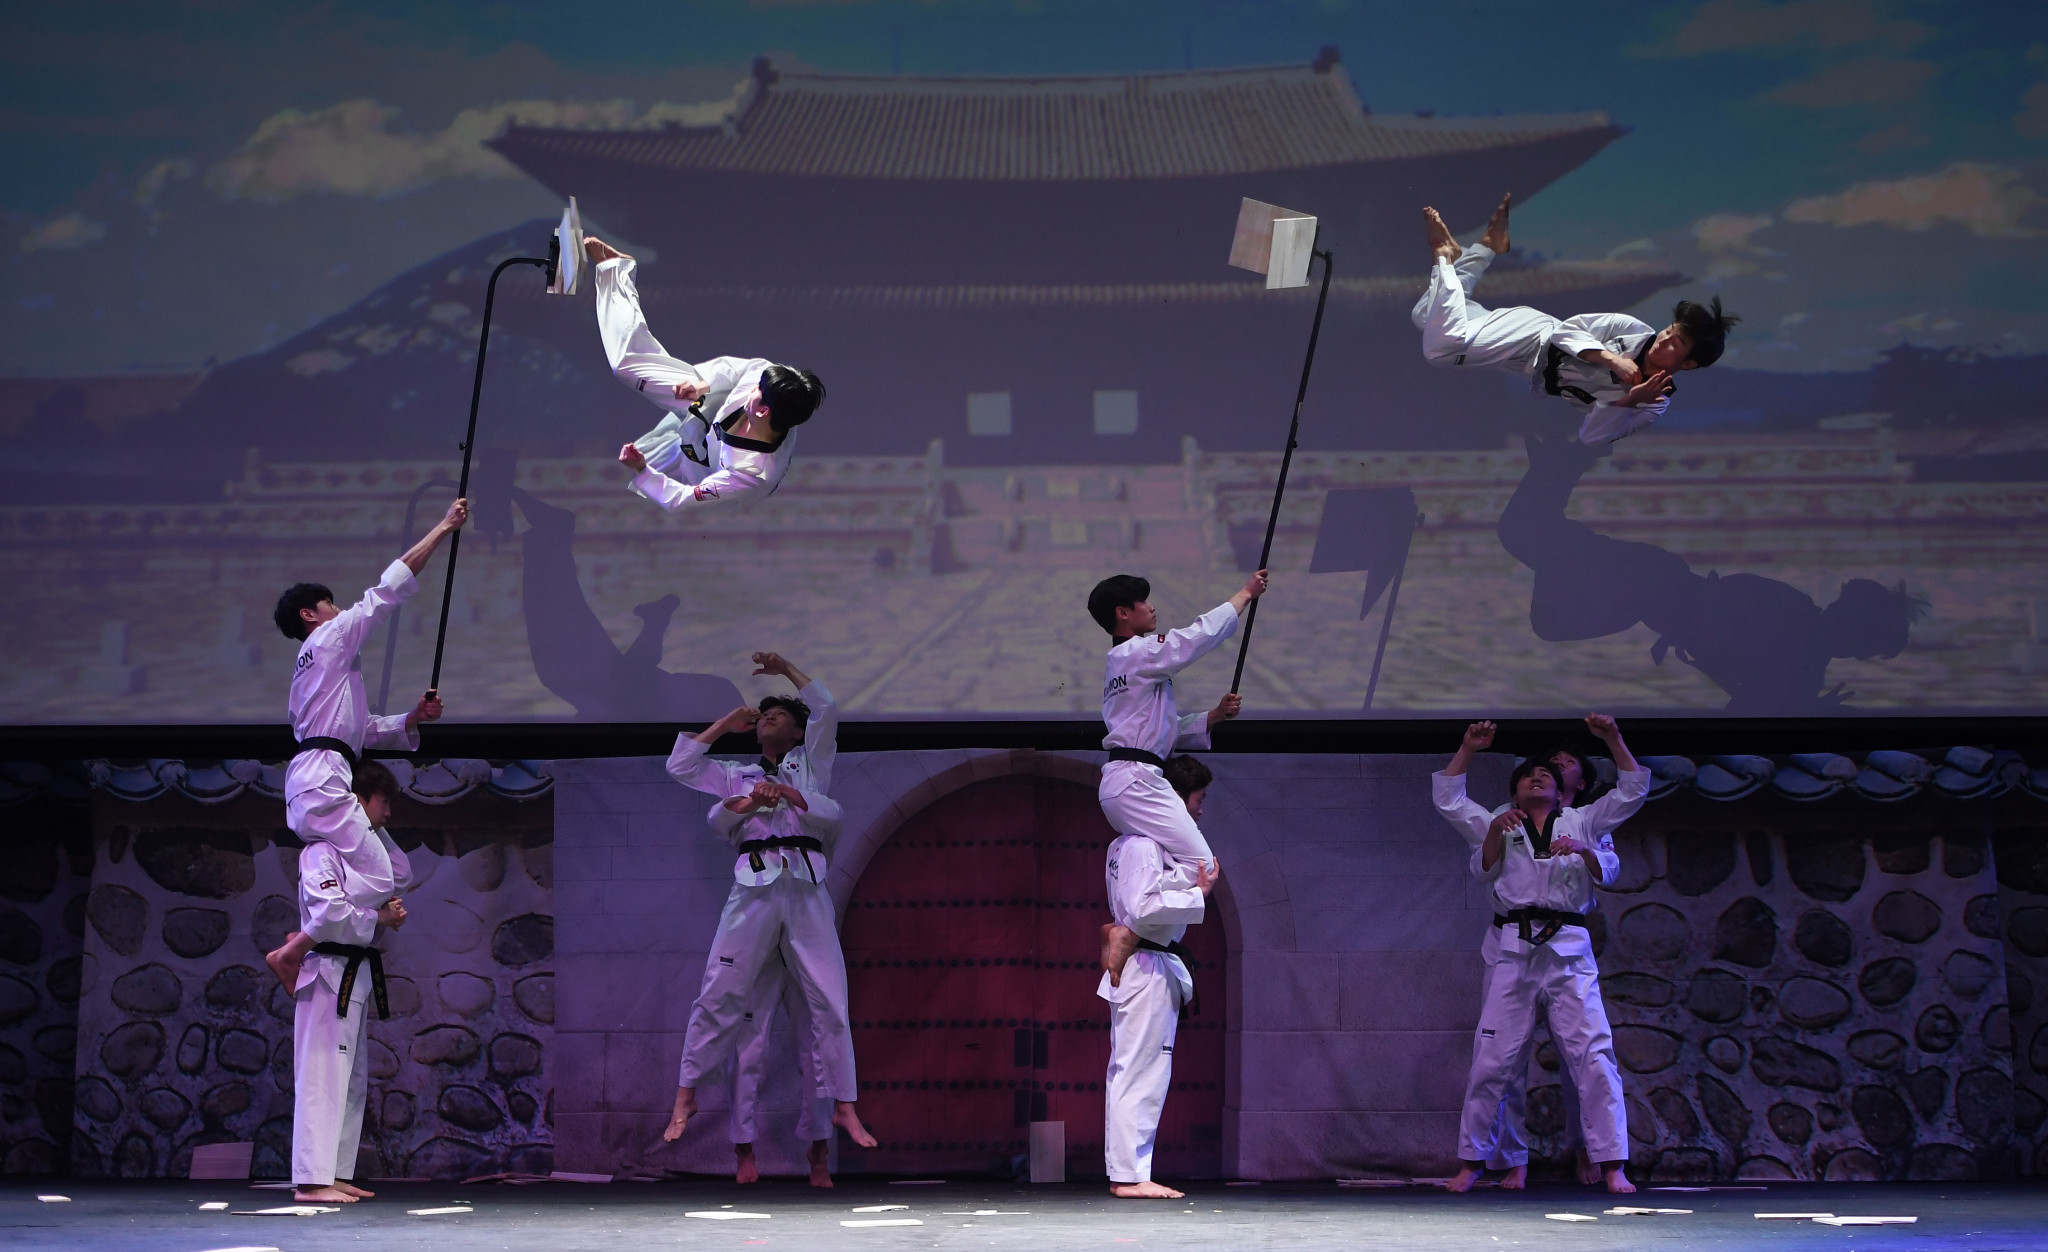 Taekwondo Hope Relay launched to spread positivity amid pandemic